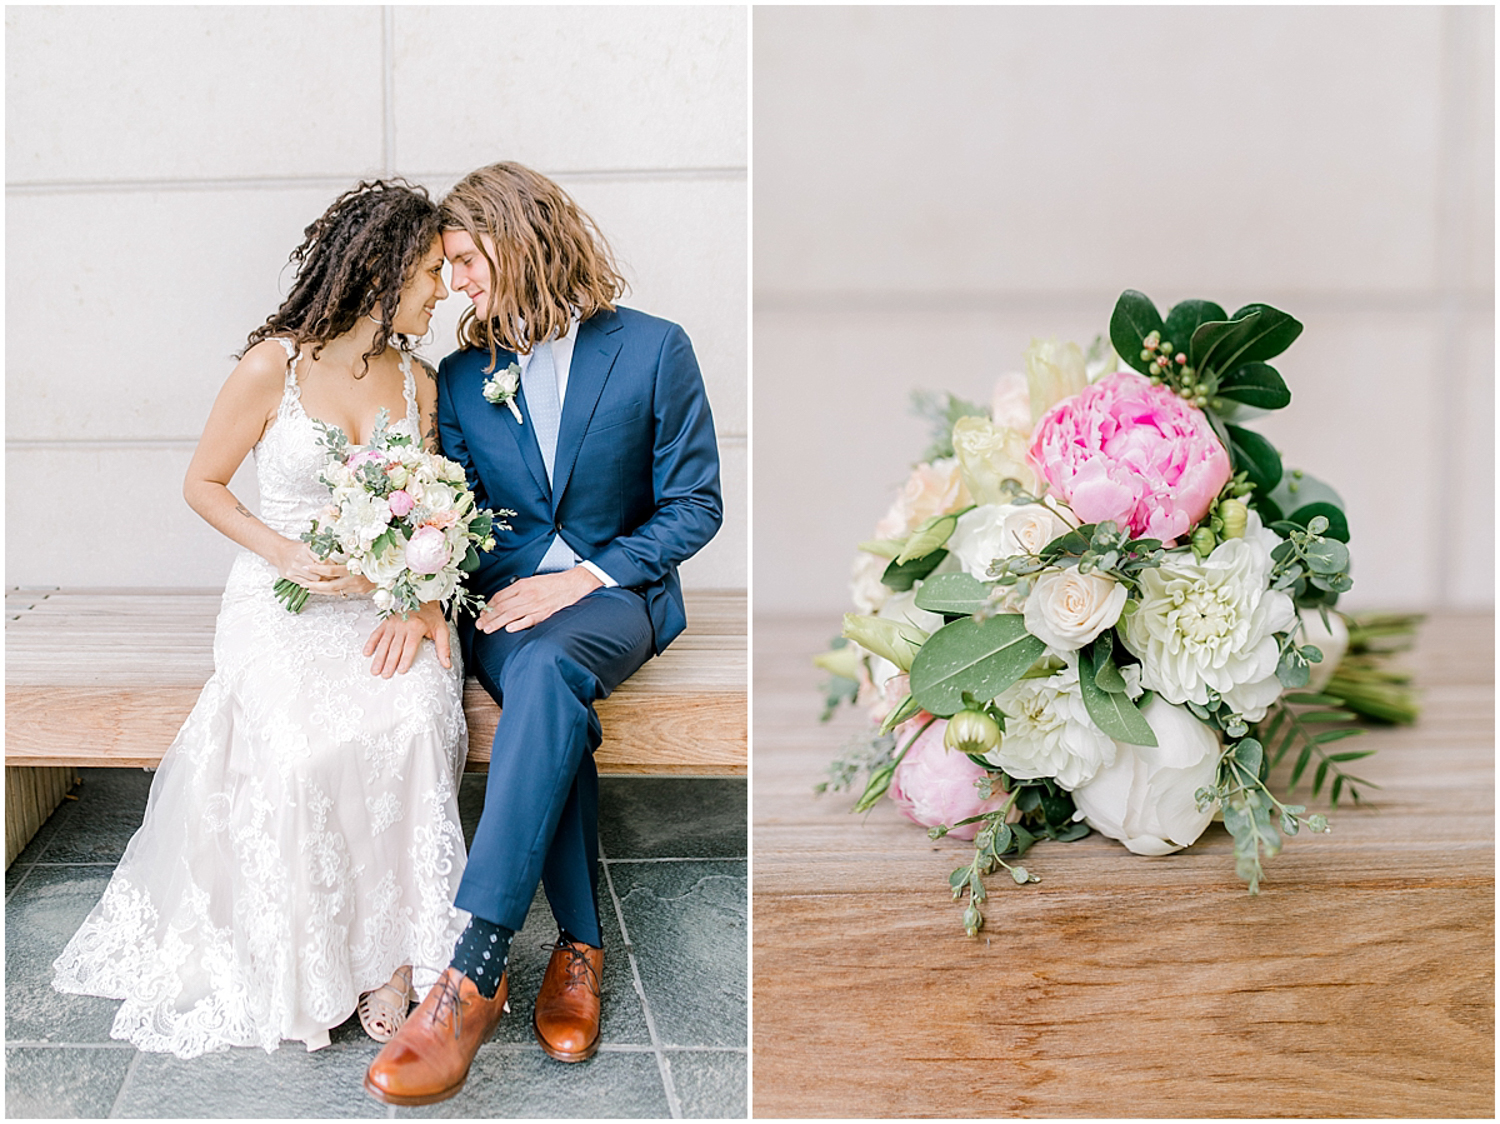 Seattle City Hall Courthouse Wedding Elopement | Seattle Wedding Photographer | Emma Rose Company | Downtown Seattle Wedding Inspiration | Pacific Northwest Elopement | Courthouse Elopement in the City-31.jpg